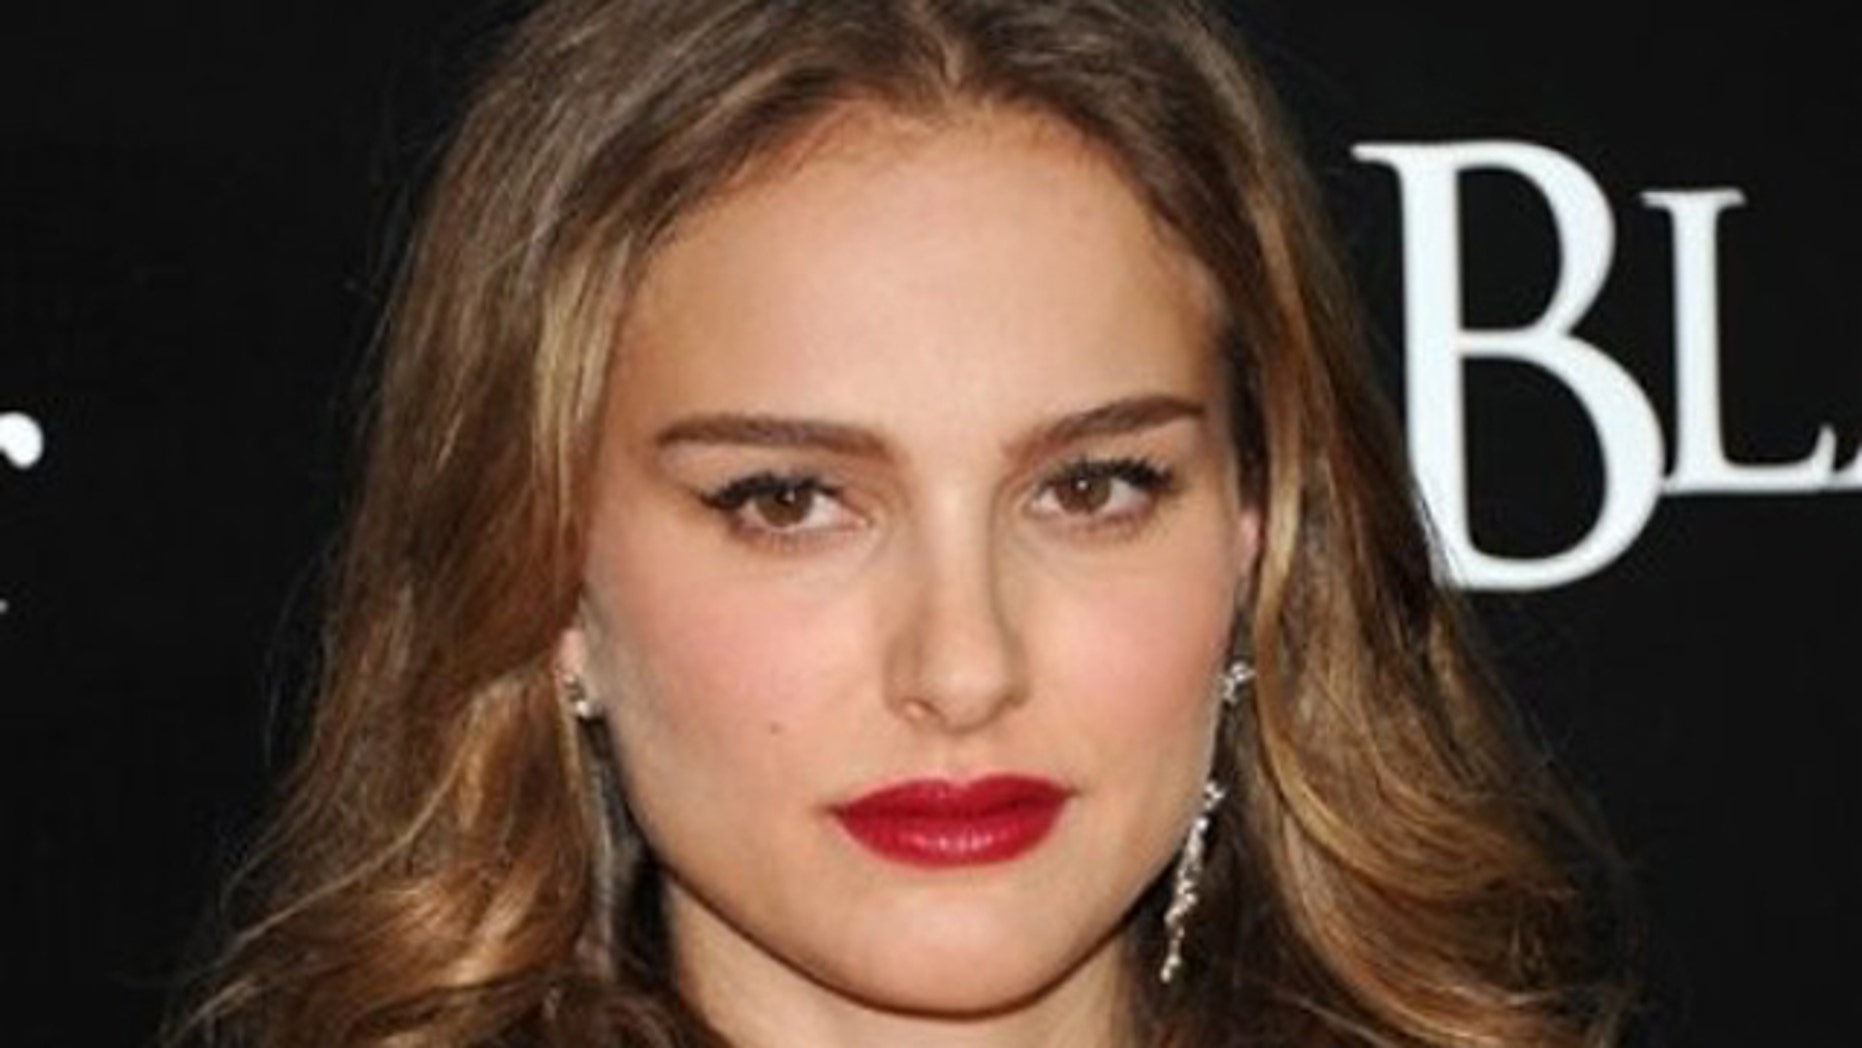 Nov. 30: Actress Natalie Portman attends the premiere of 'Black Swan' at the Ziegfeld Theatre in New York (AP).